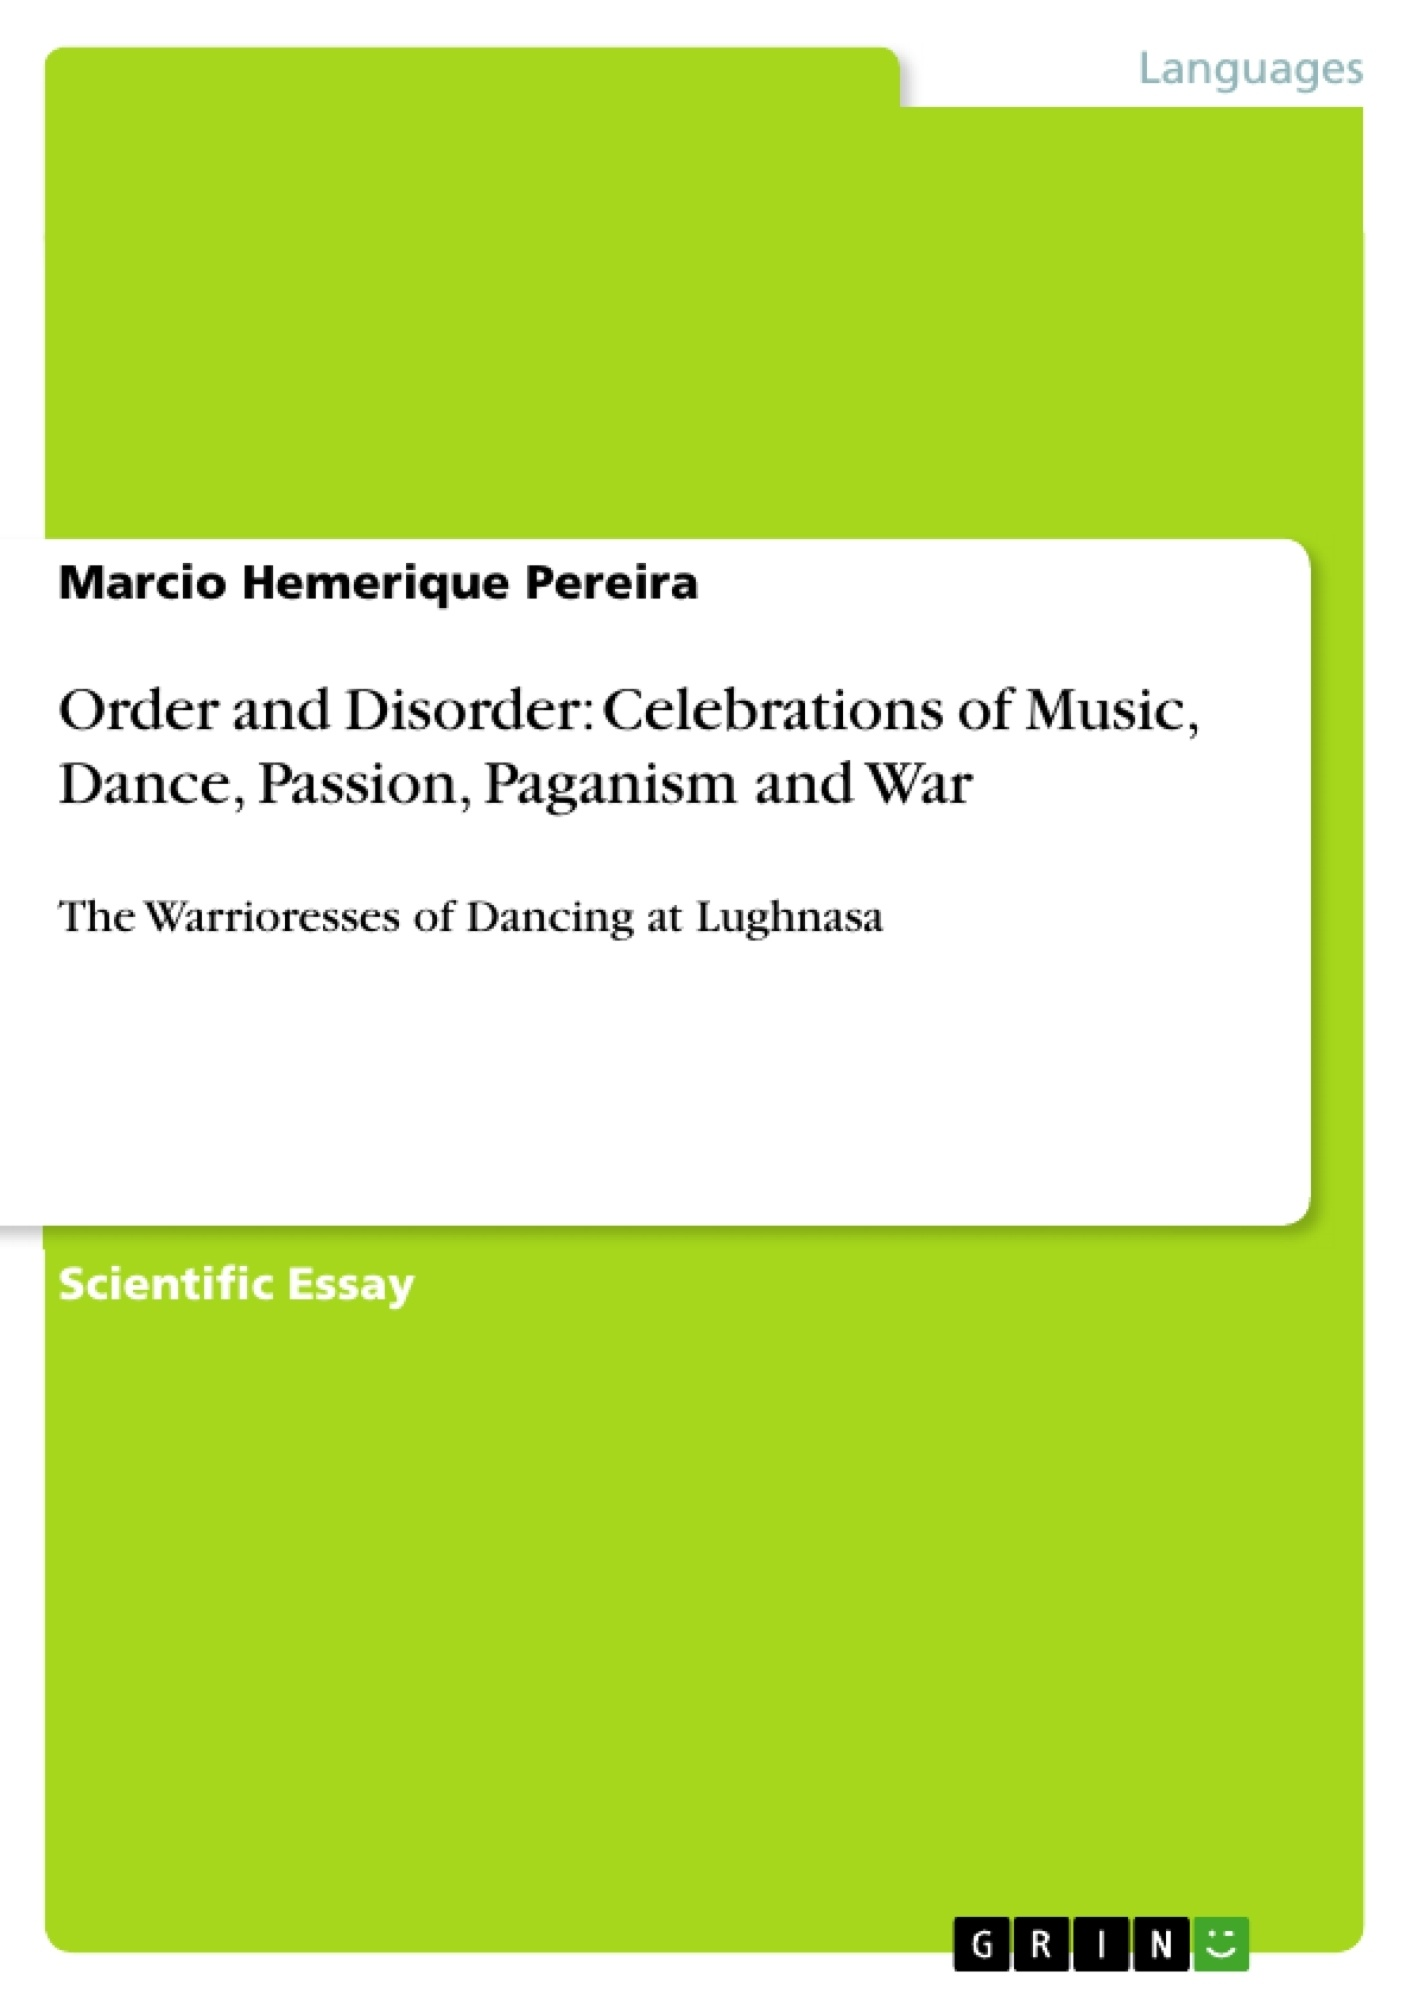 Title: Order and Disorder: Celebrations of Music, Dance, Passion, Paganism and War